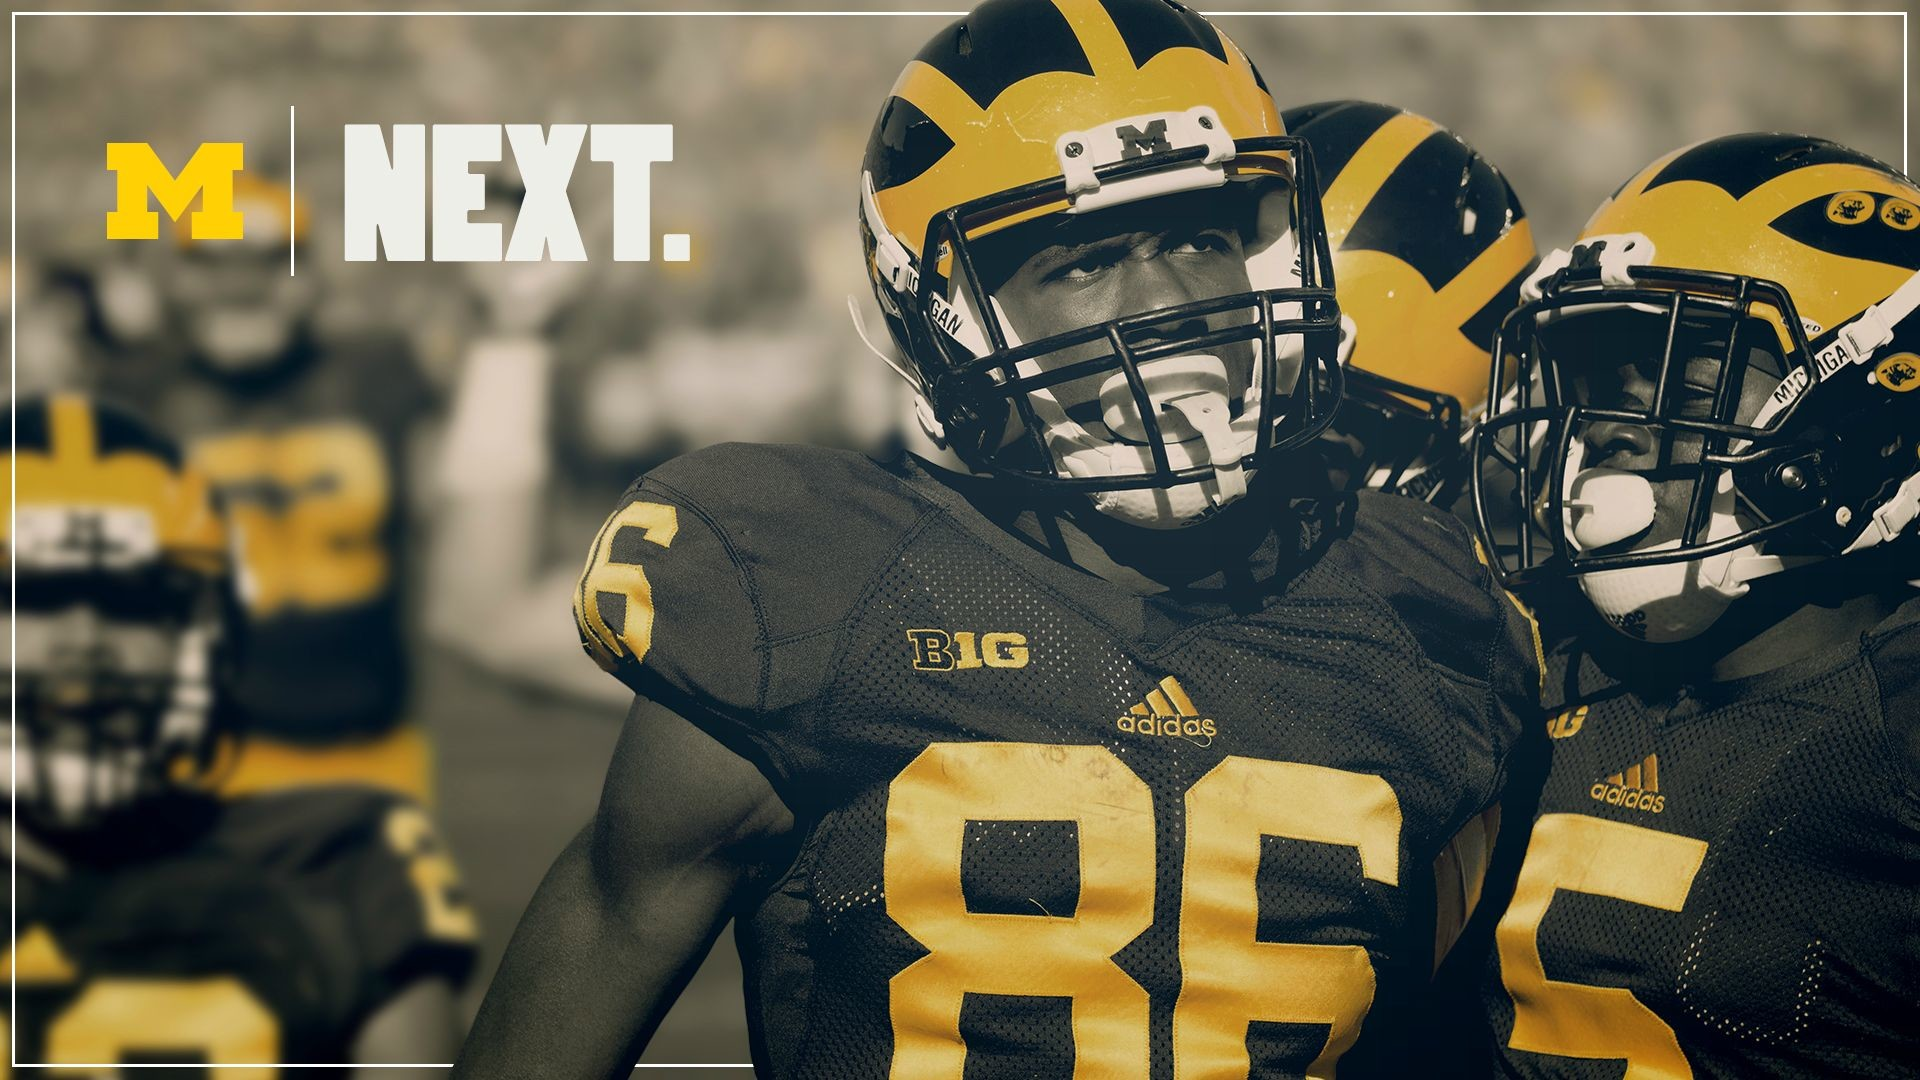 1920x1080 Michigan Wolverines Screensaver and Wallpaper